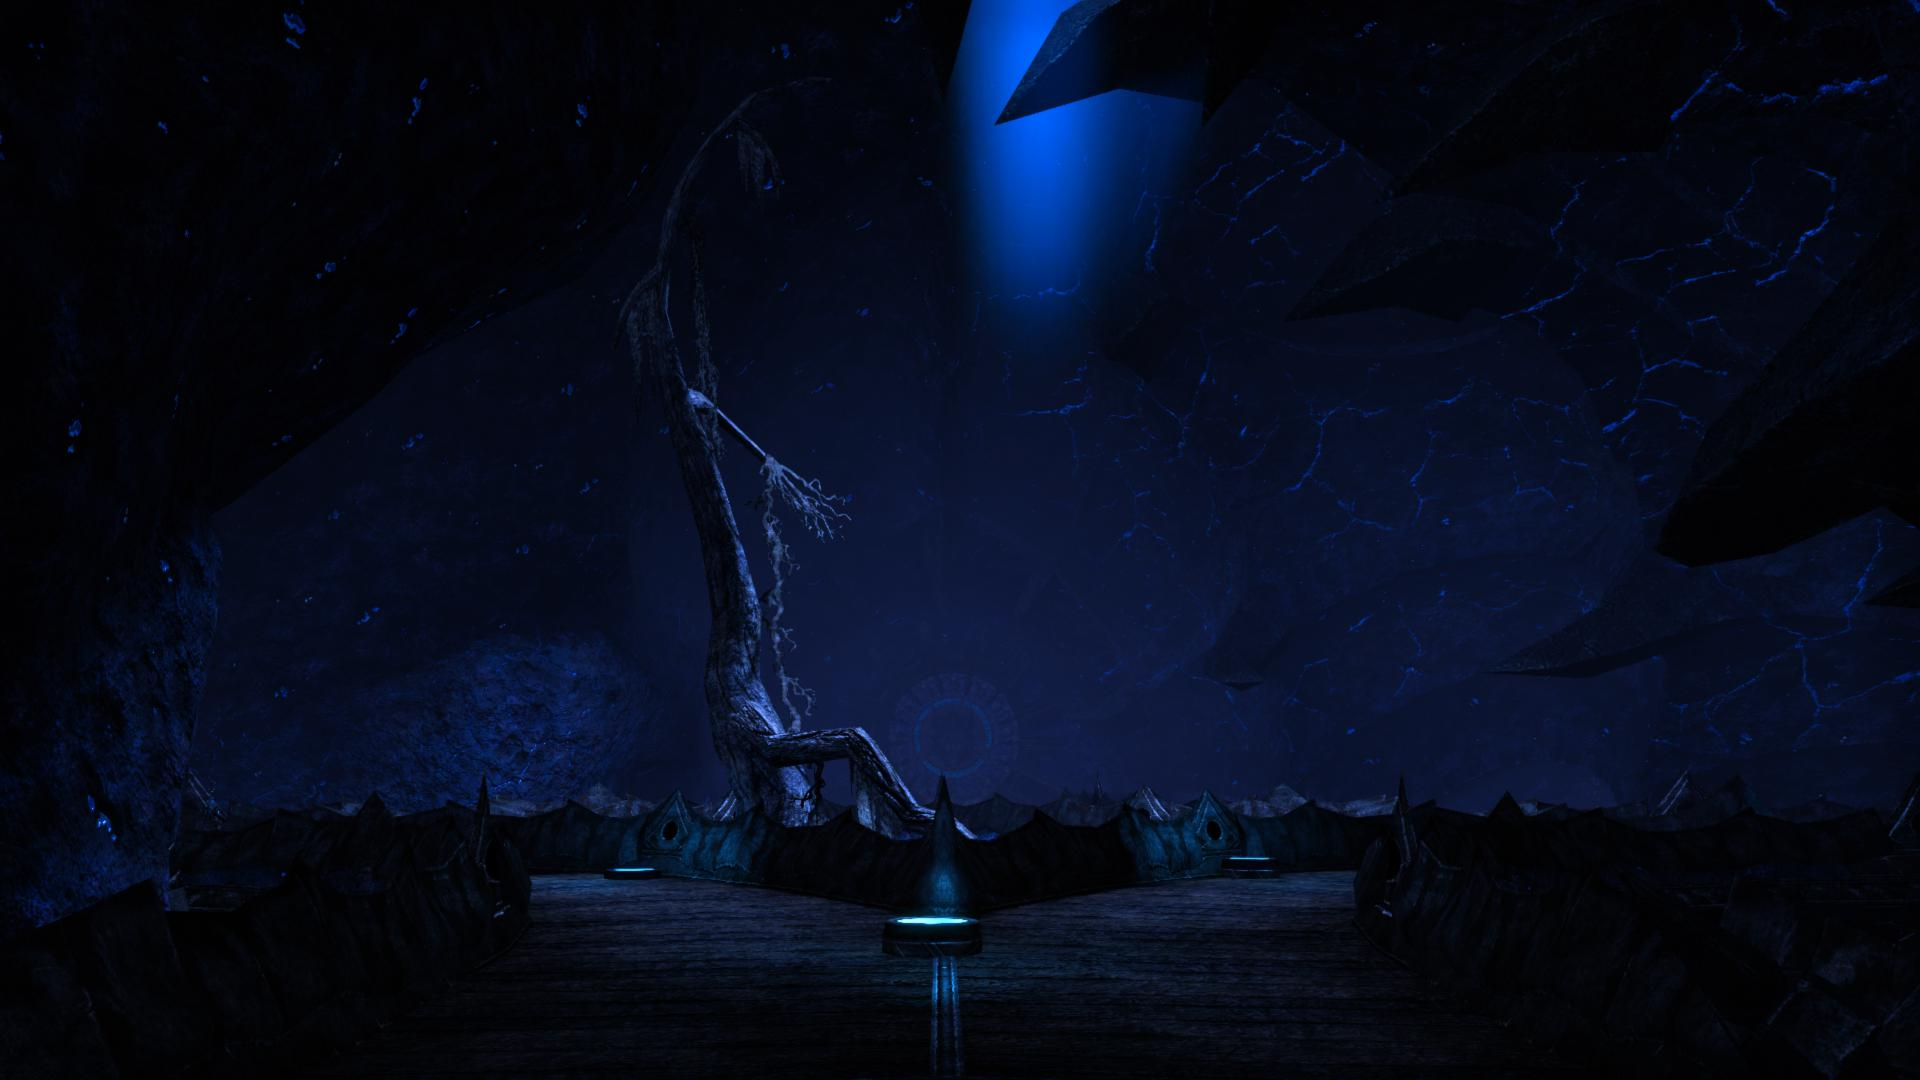 A spoopy cavern that's remarkably blue.